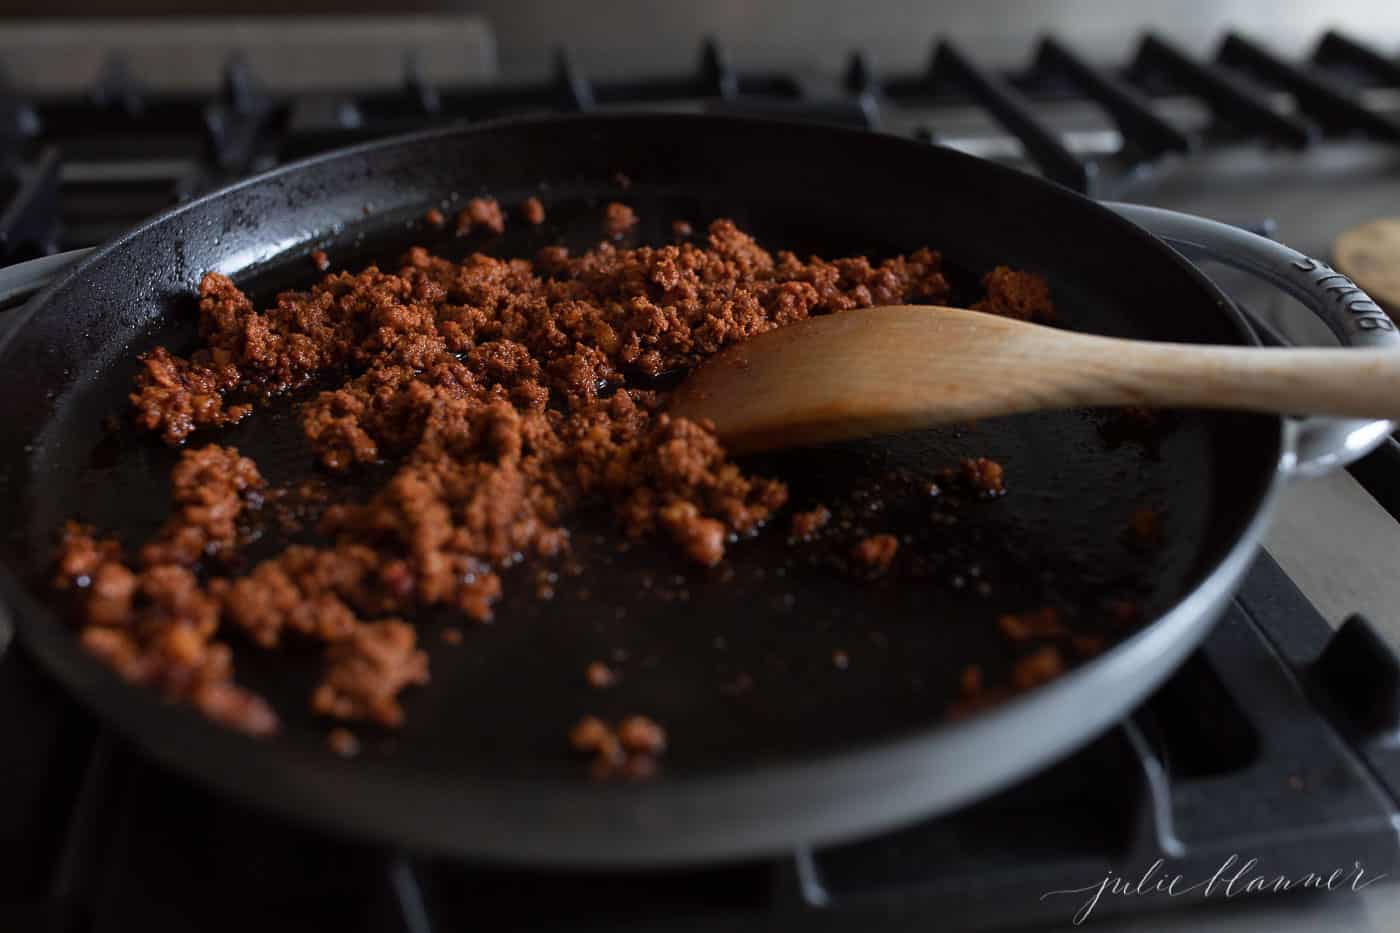 A frying pan filled with crumbled chorizo on the stove, wooden spoon to the side.